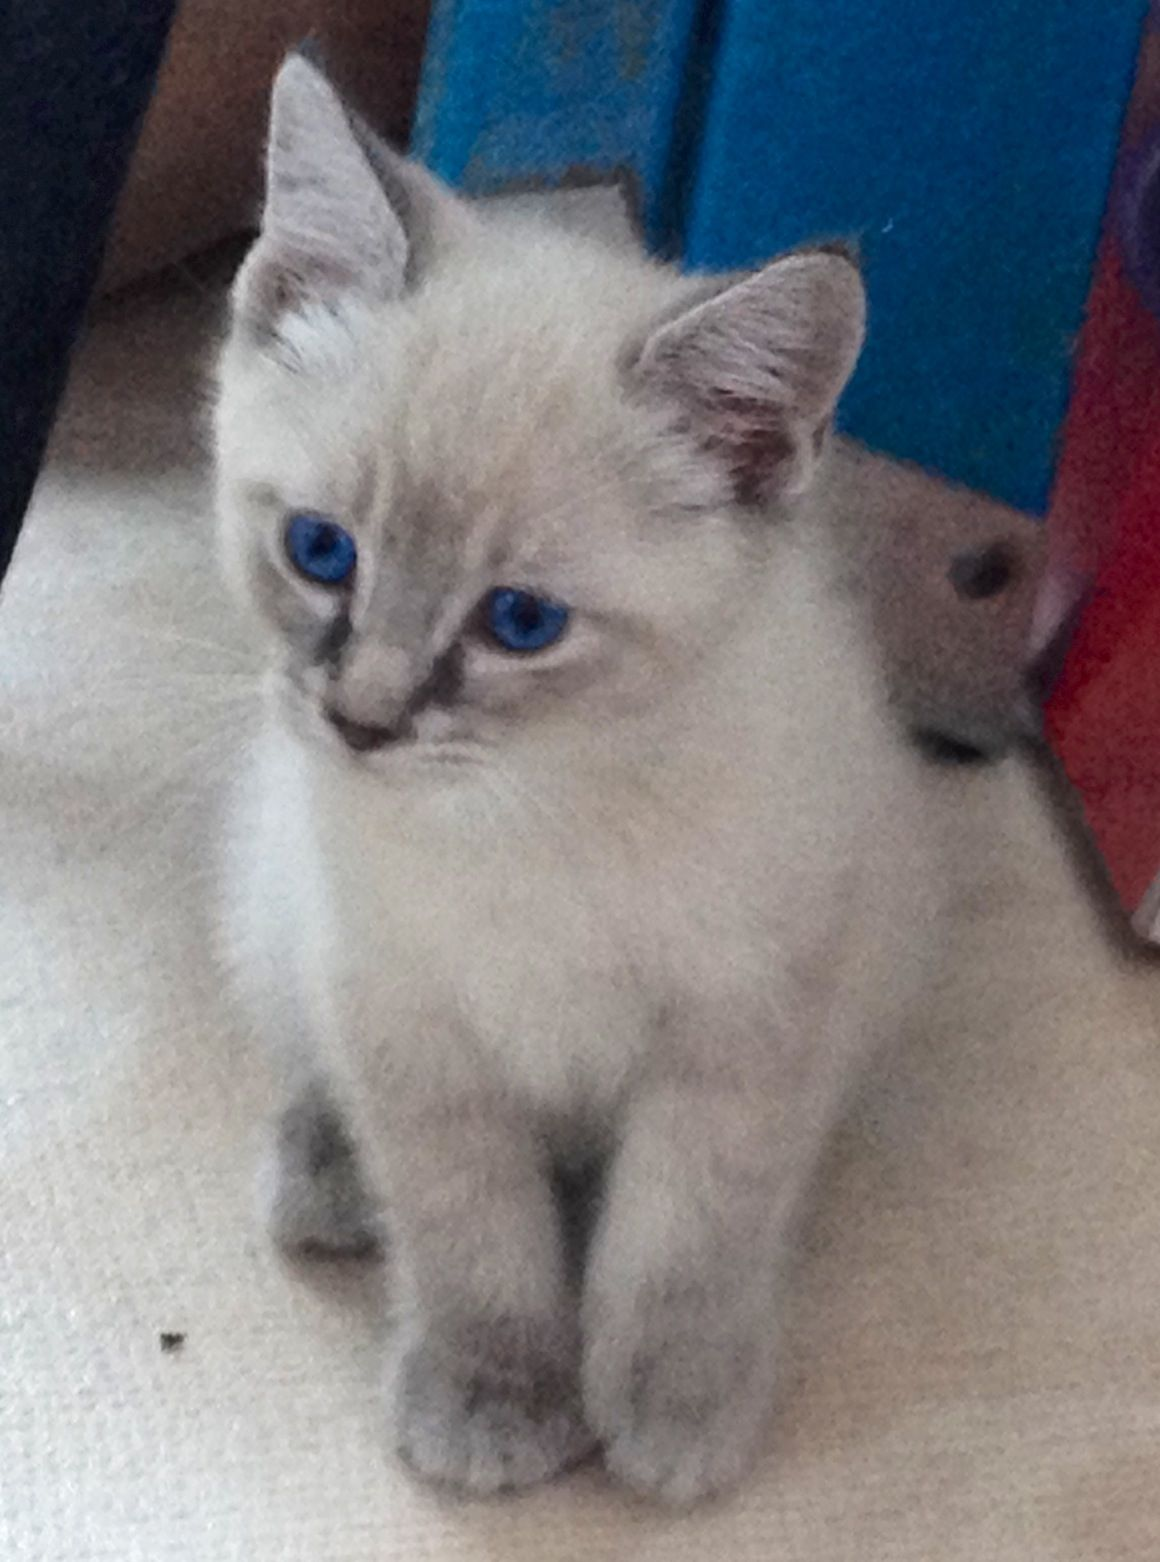 Manx and Siamese mix kitten. No tail, just a little gray nubbin ...